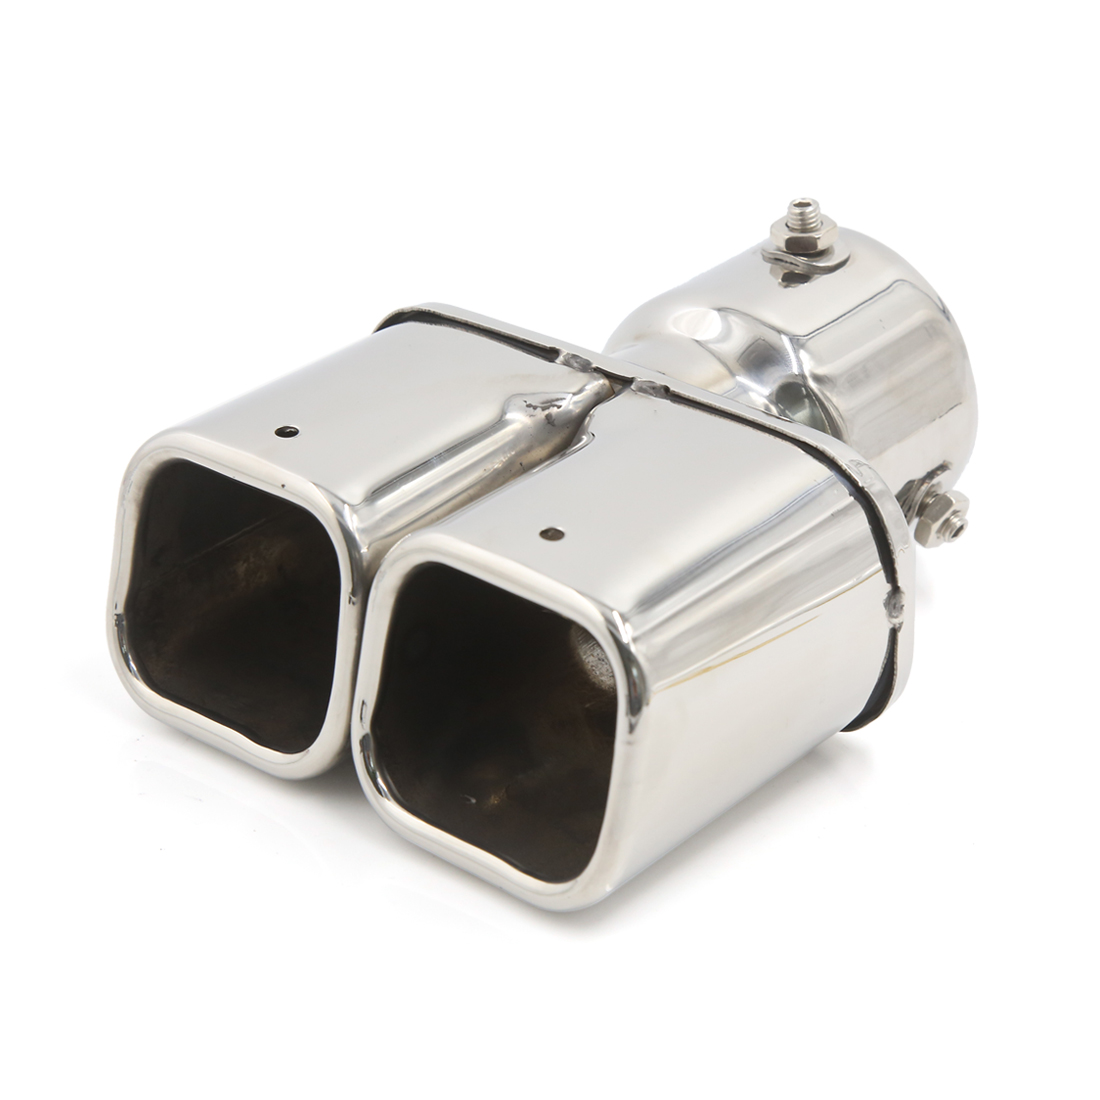 Car Dual Tip 74mm Inlet Stainless Steel Exhaust Muffler Tail Pipe Silver Tone